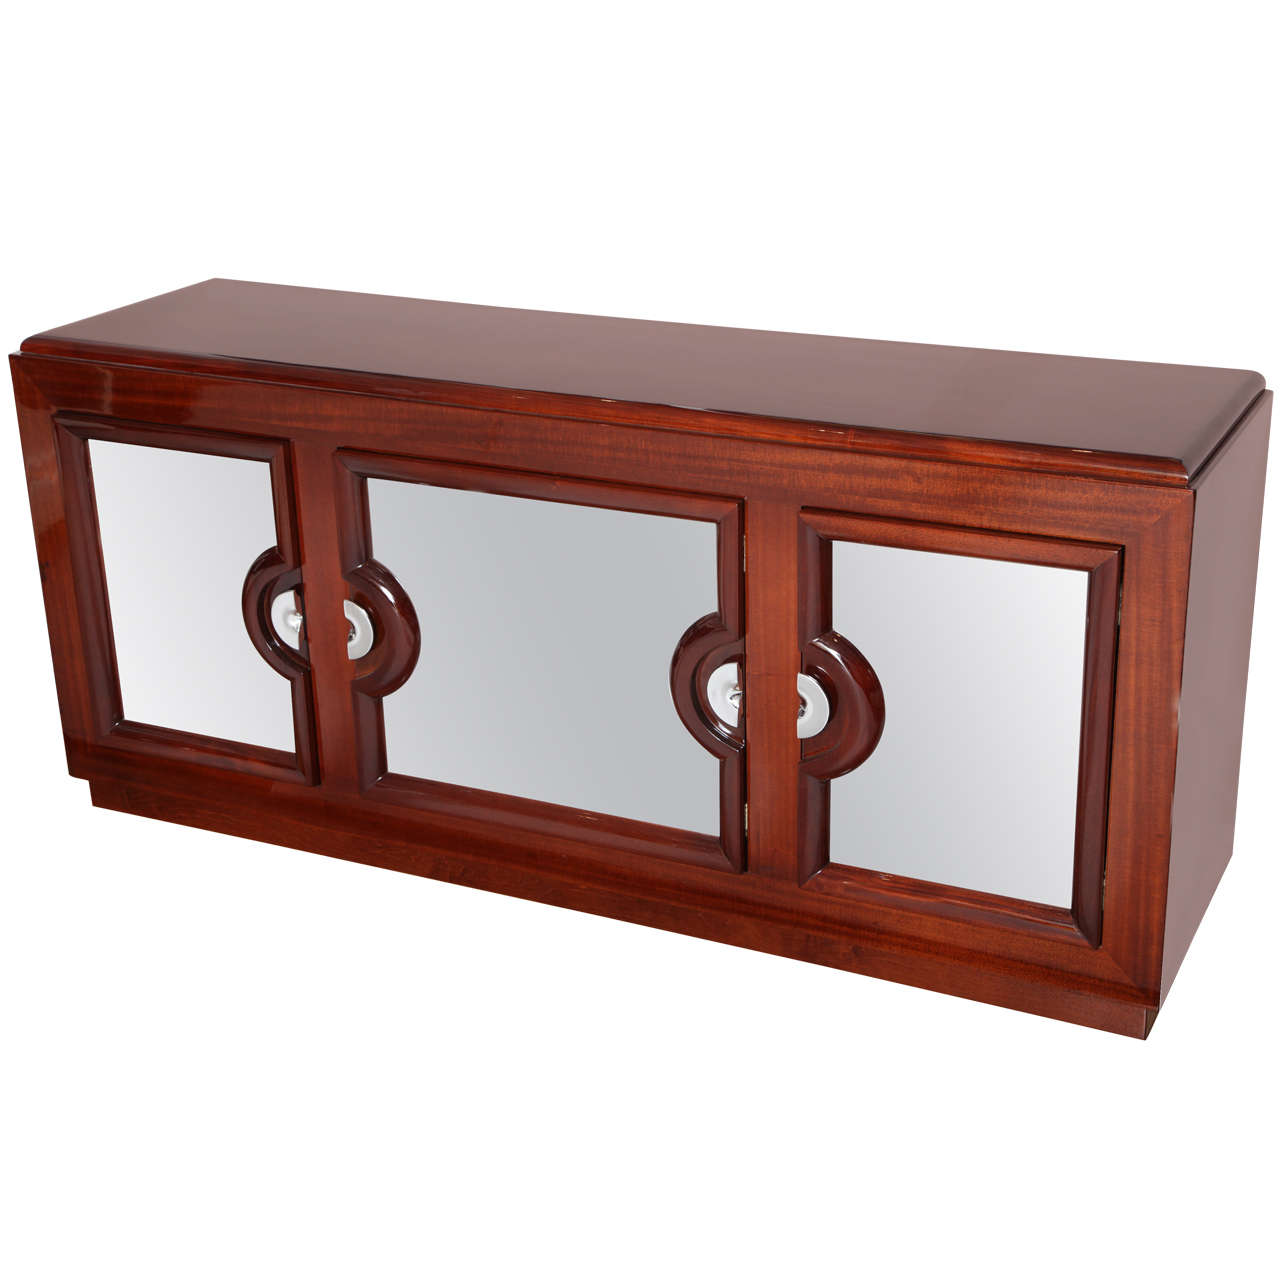 Art Deco Machine Age Style Sideboard